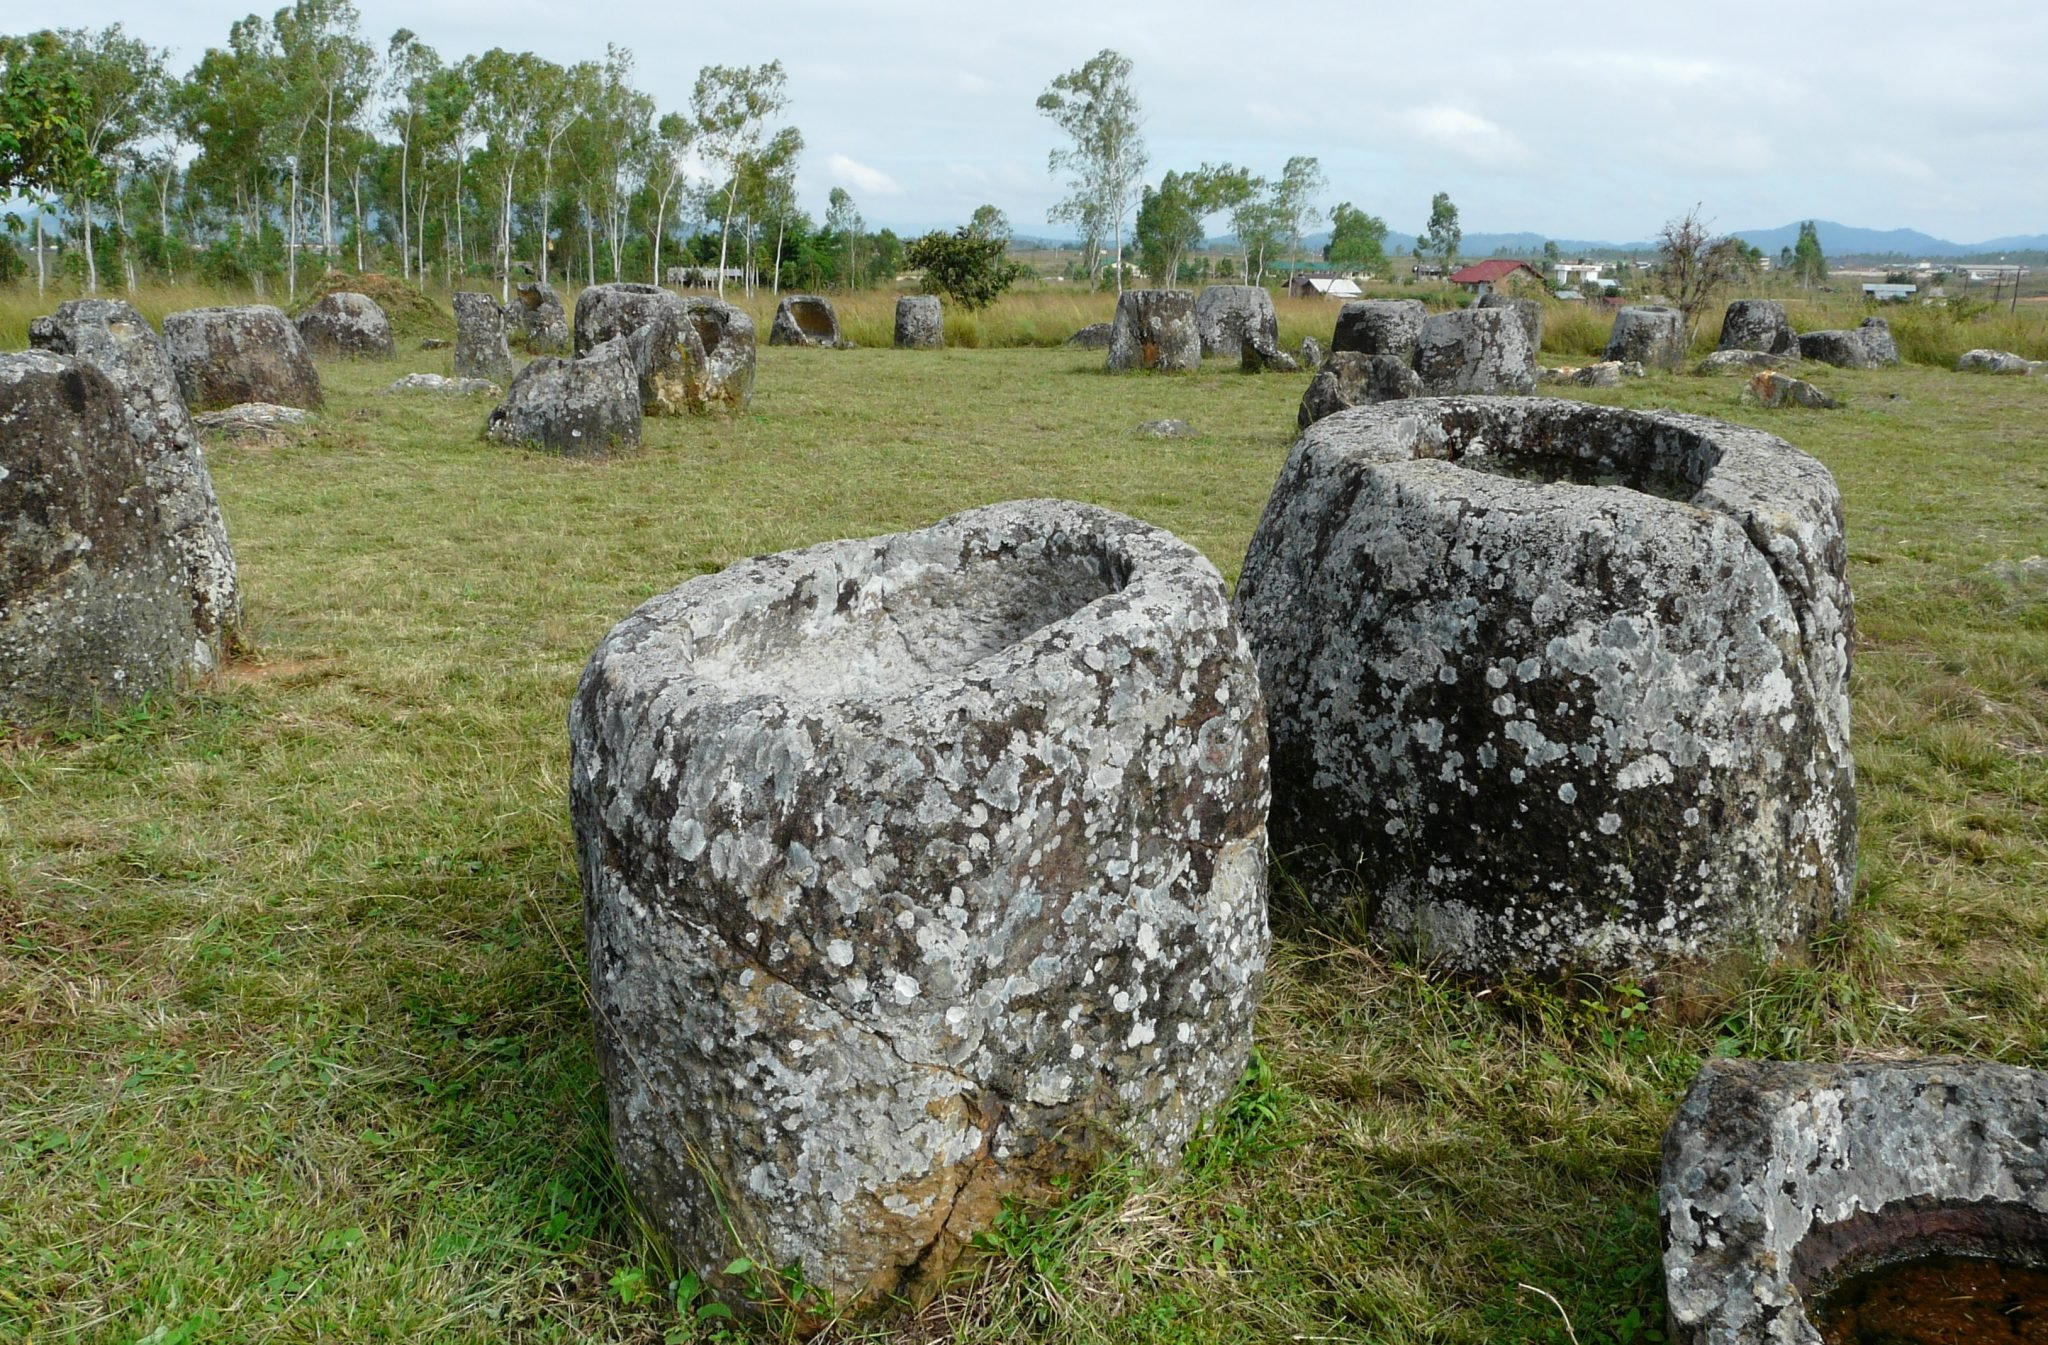 Plain of Jars sites 1, 2, 3